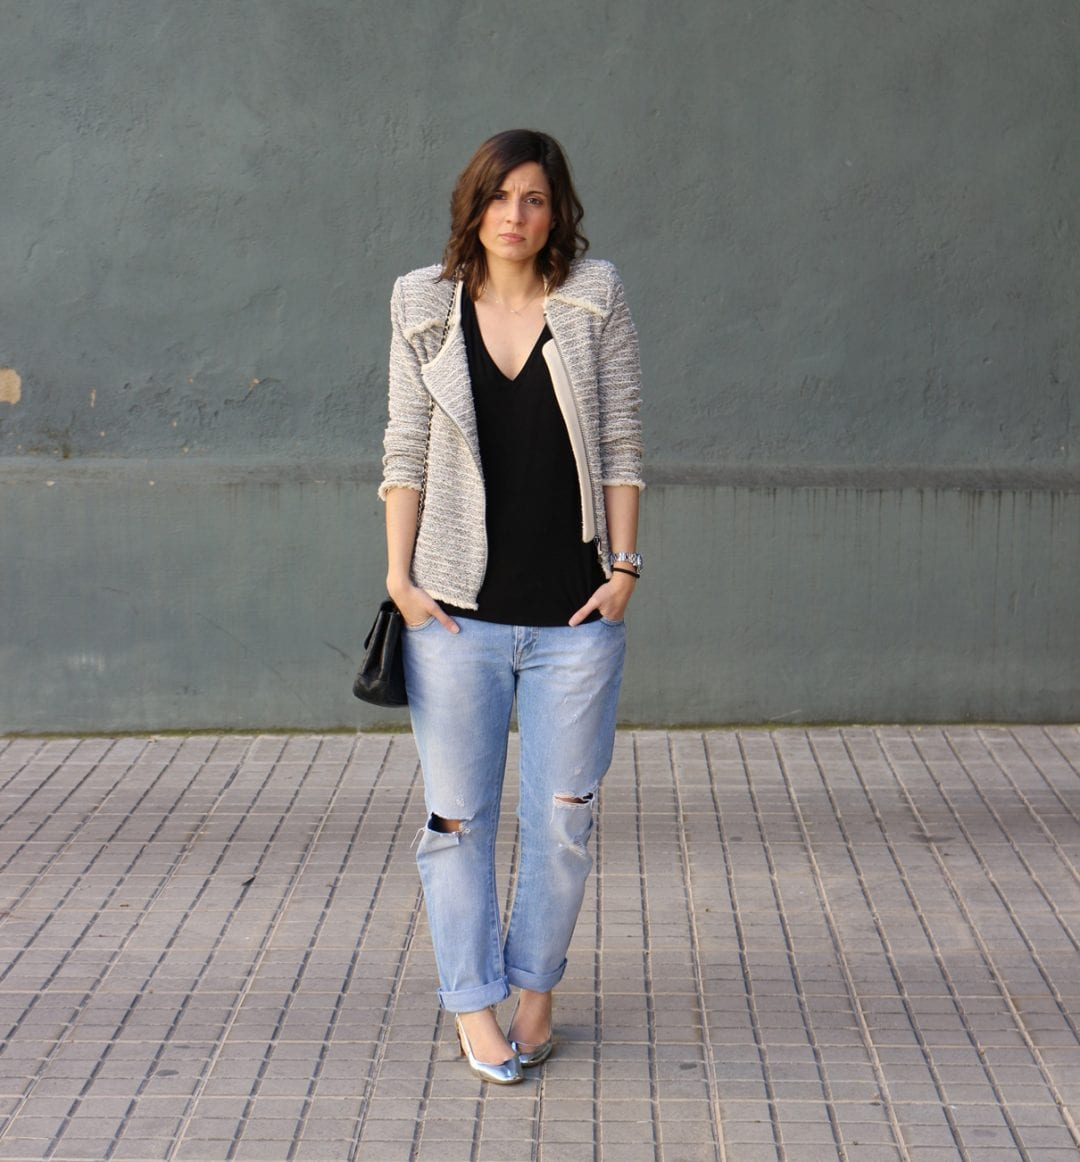 zapatos plateados de zara - jeans rotos - chaqueta tweed - fashion blogger